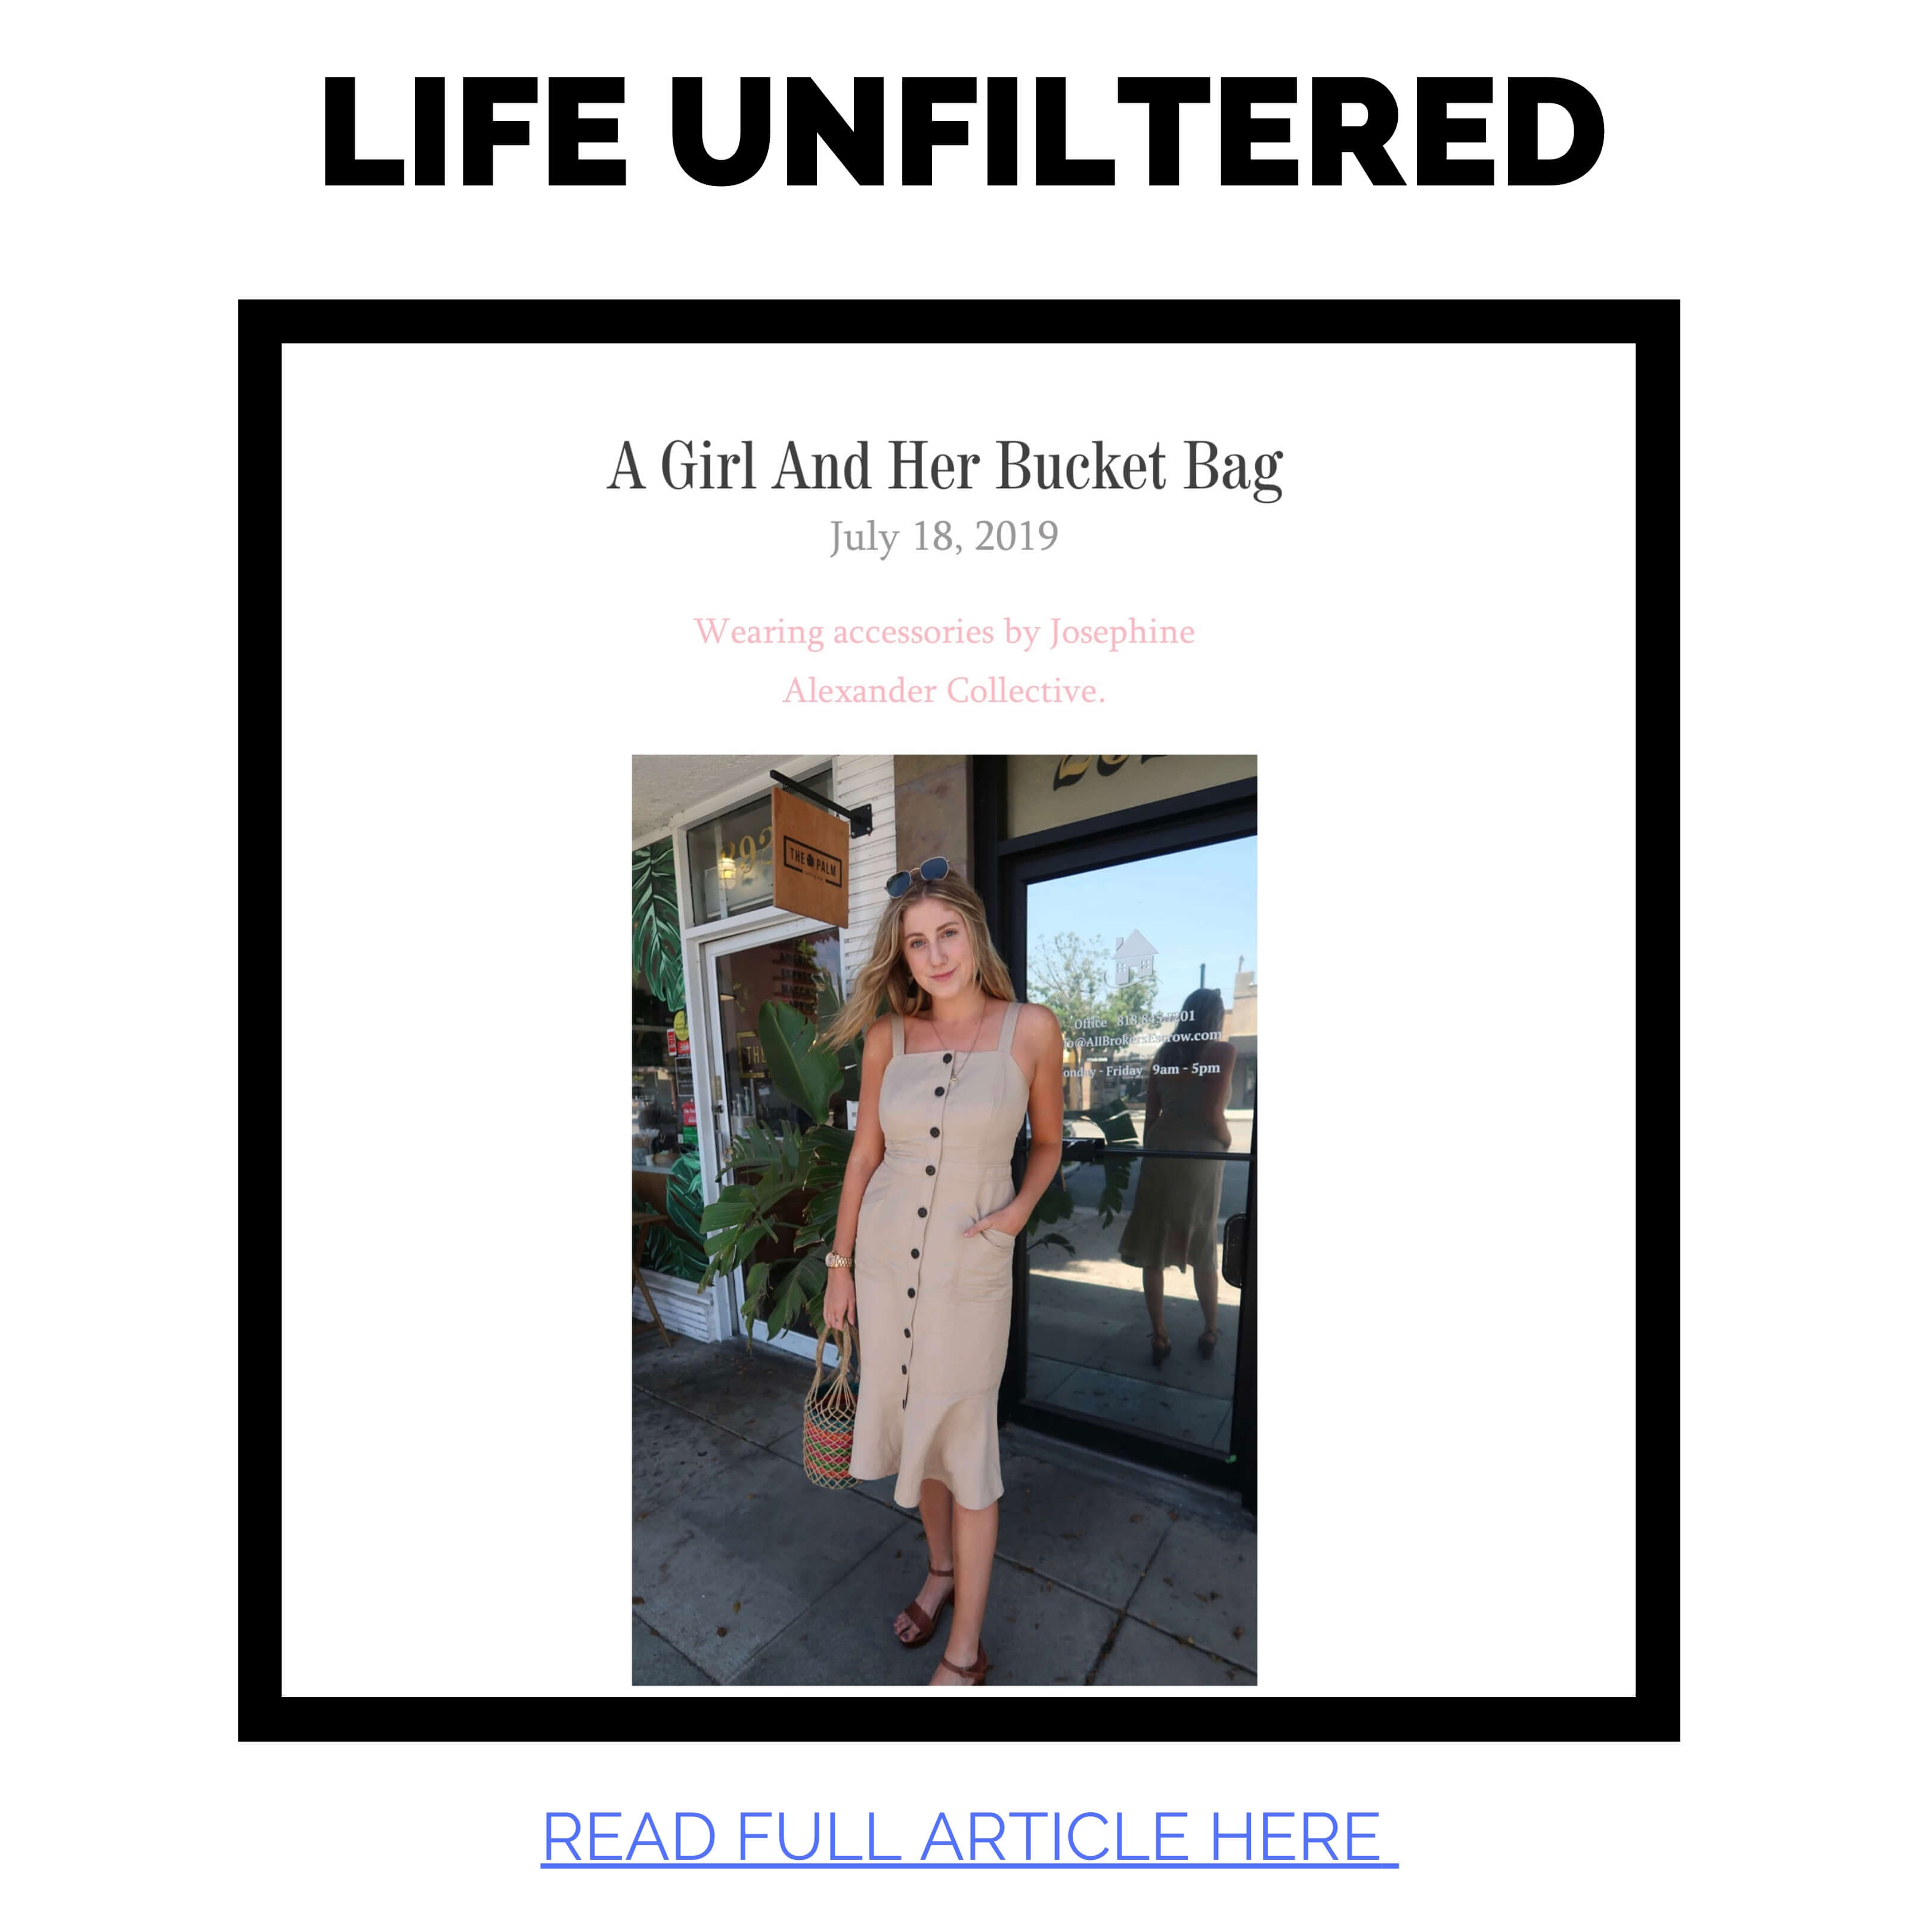 JAC featured in Life Unfiltered